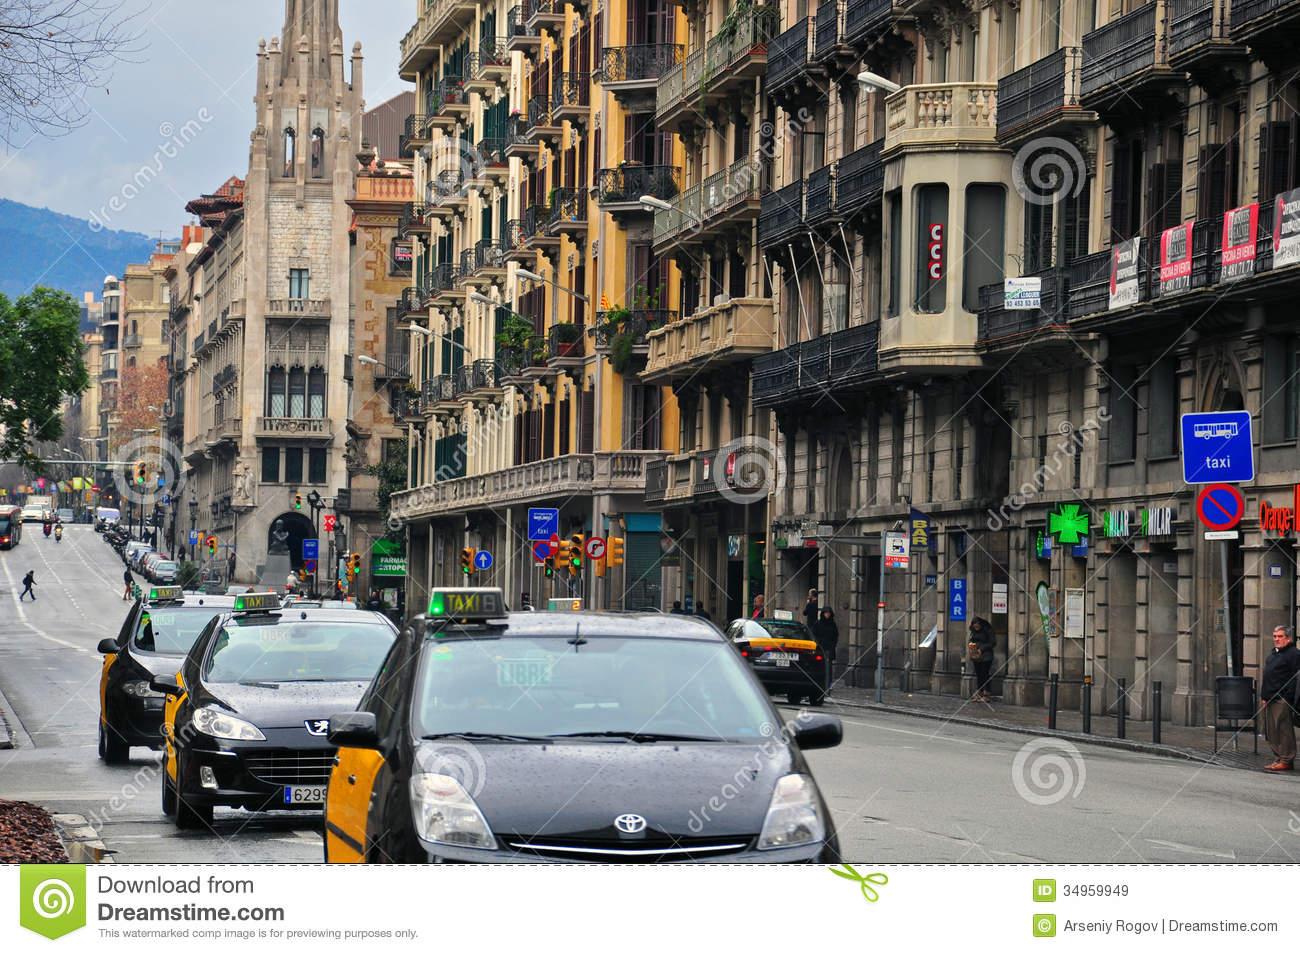 Taxi in barcelona editorial stock image image of vehicle 34959949 - Cab in barcelona ...